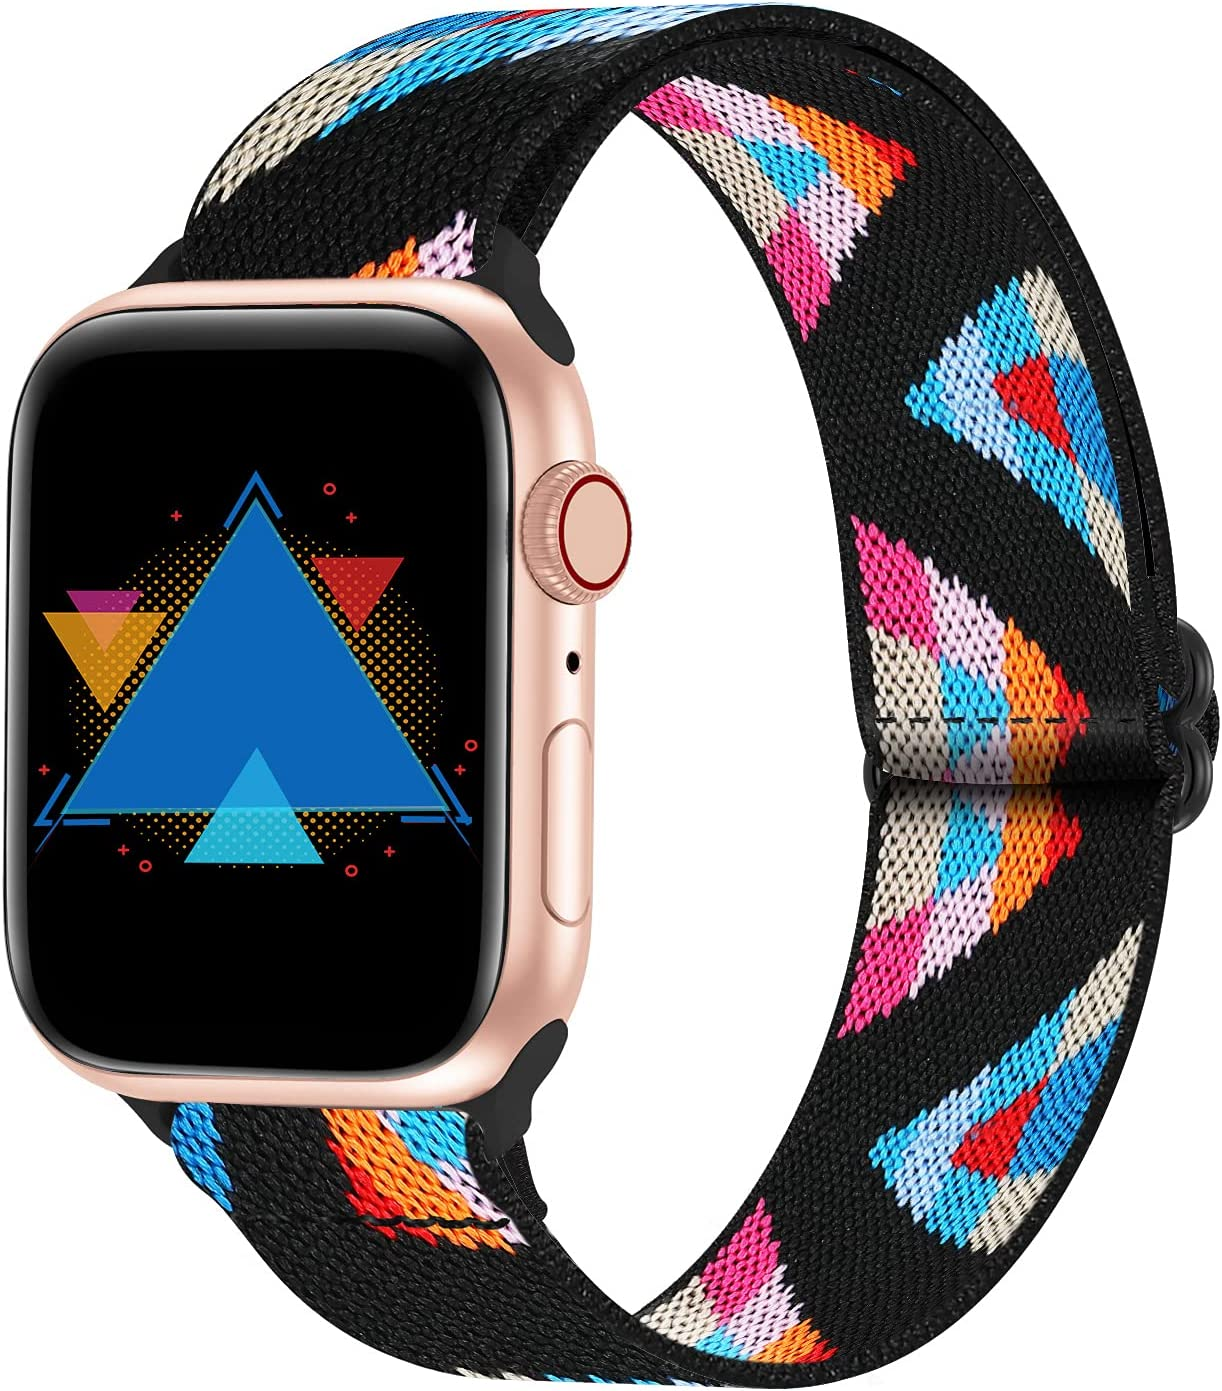 YAXIN Stretchy Solo Loop Band Compatible with Apple Watch Bands 38mm 40mm 42mm 44mm, Adjustable Elastic Band Braided Nylon Sport Replacement Strap Women Men Compatible for iWatch Series SE/6/5/4/3/2/1